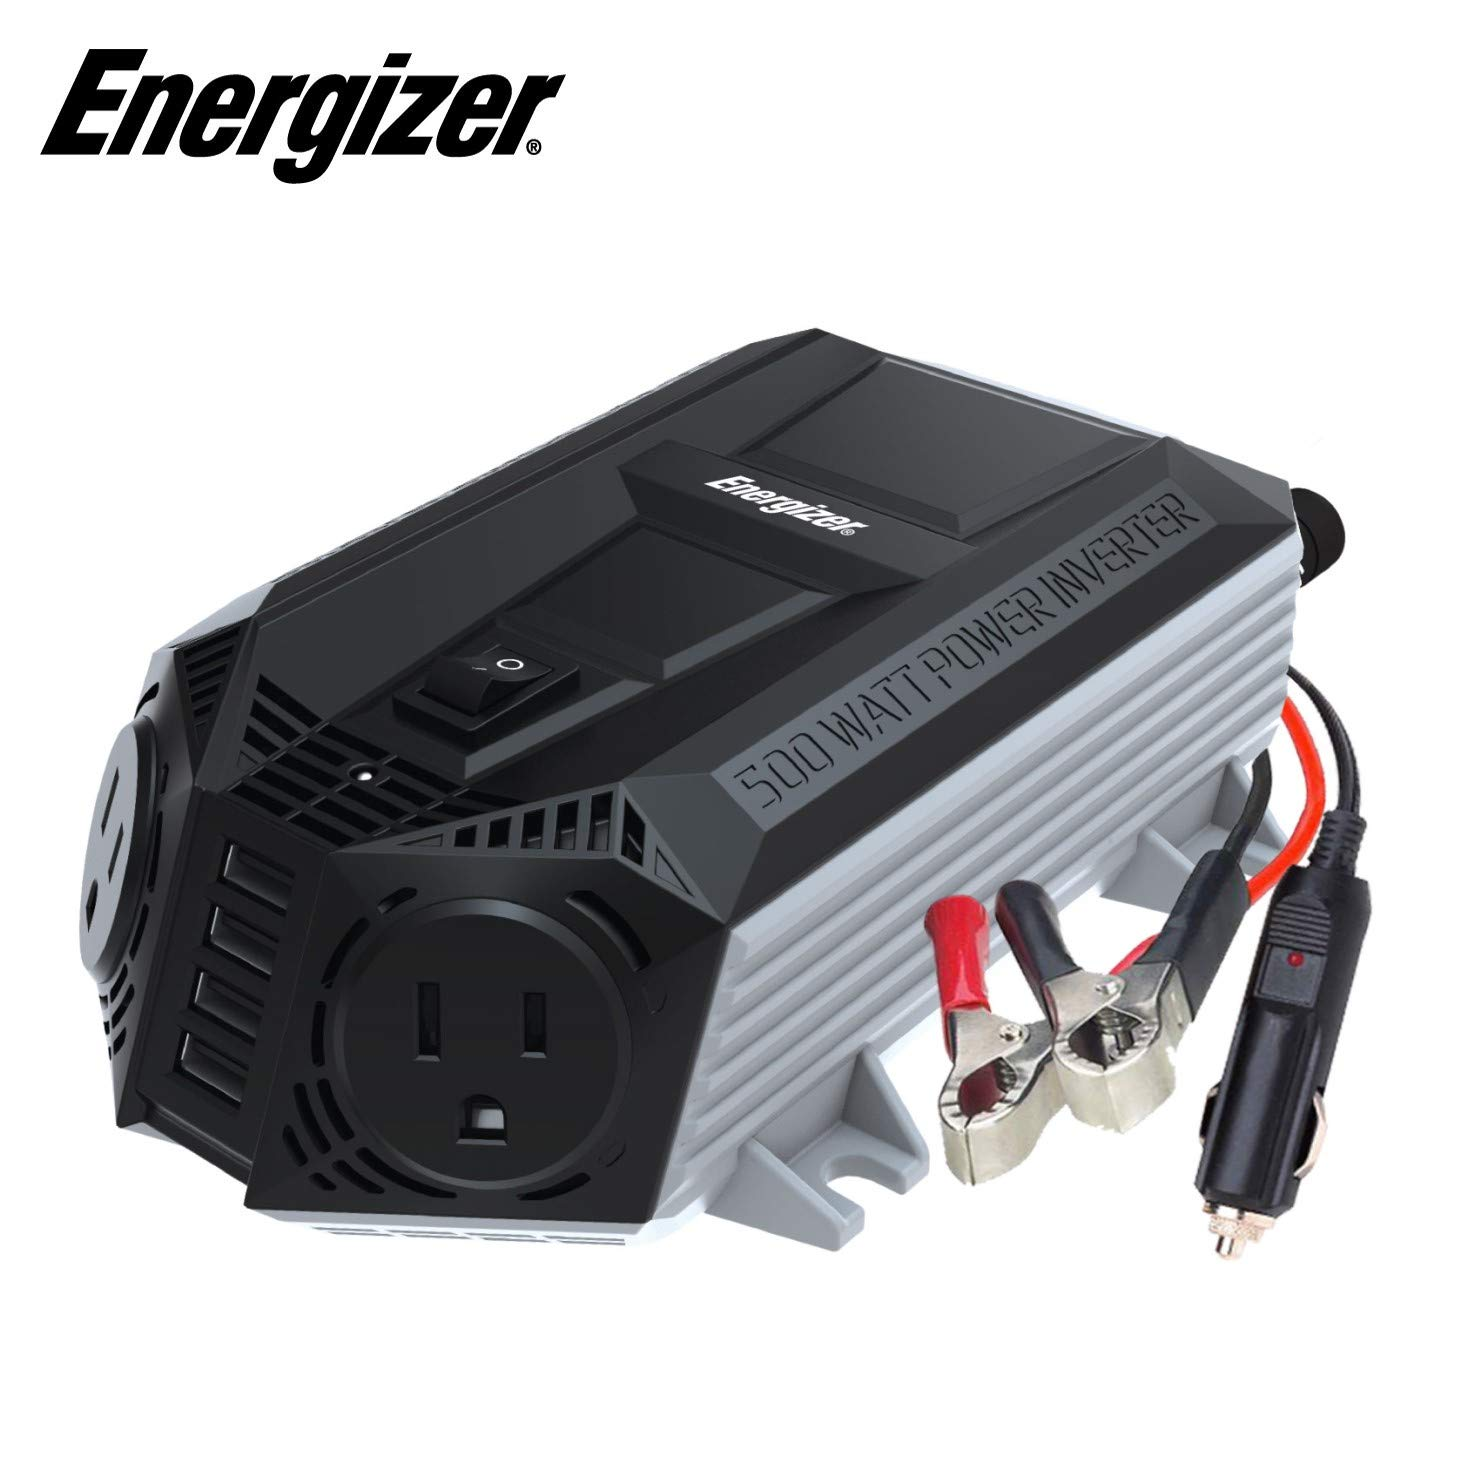 Energizer 500 Watts Power Inverter DC 12V to 110V AC Converter, Modified Sine Wave, Dual 110 Volt AC Outlets, 2.4A USB Ports, Car Adapter and Battery Clips – MET Approved to UL and CSA Standards